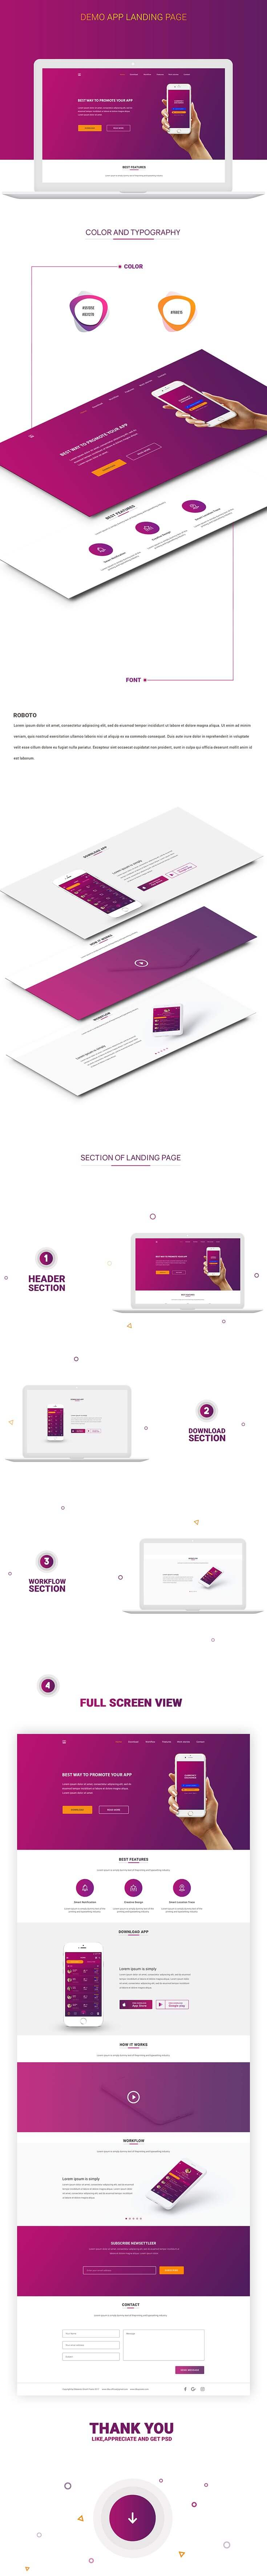 Free Money Template Elioleracom Free Money Exchange App Landing Page Design  PSD Free Money Template